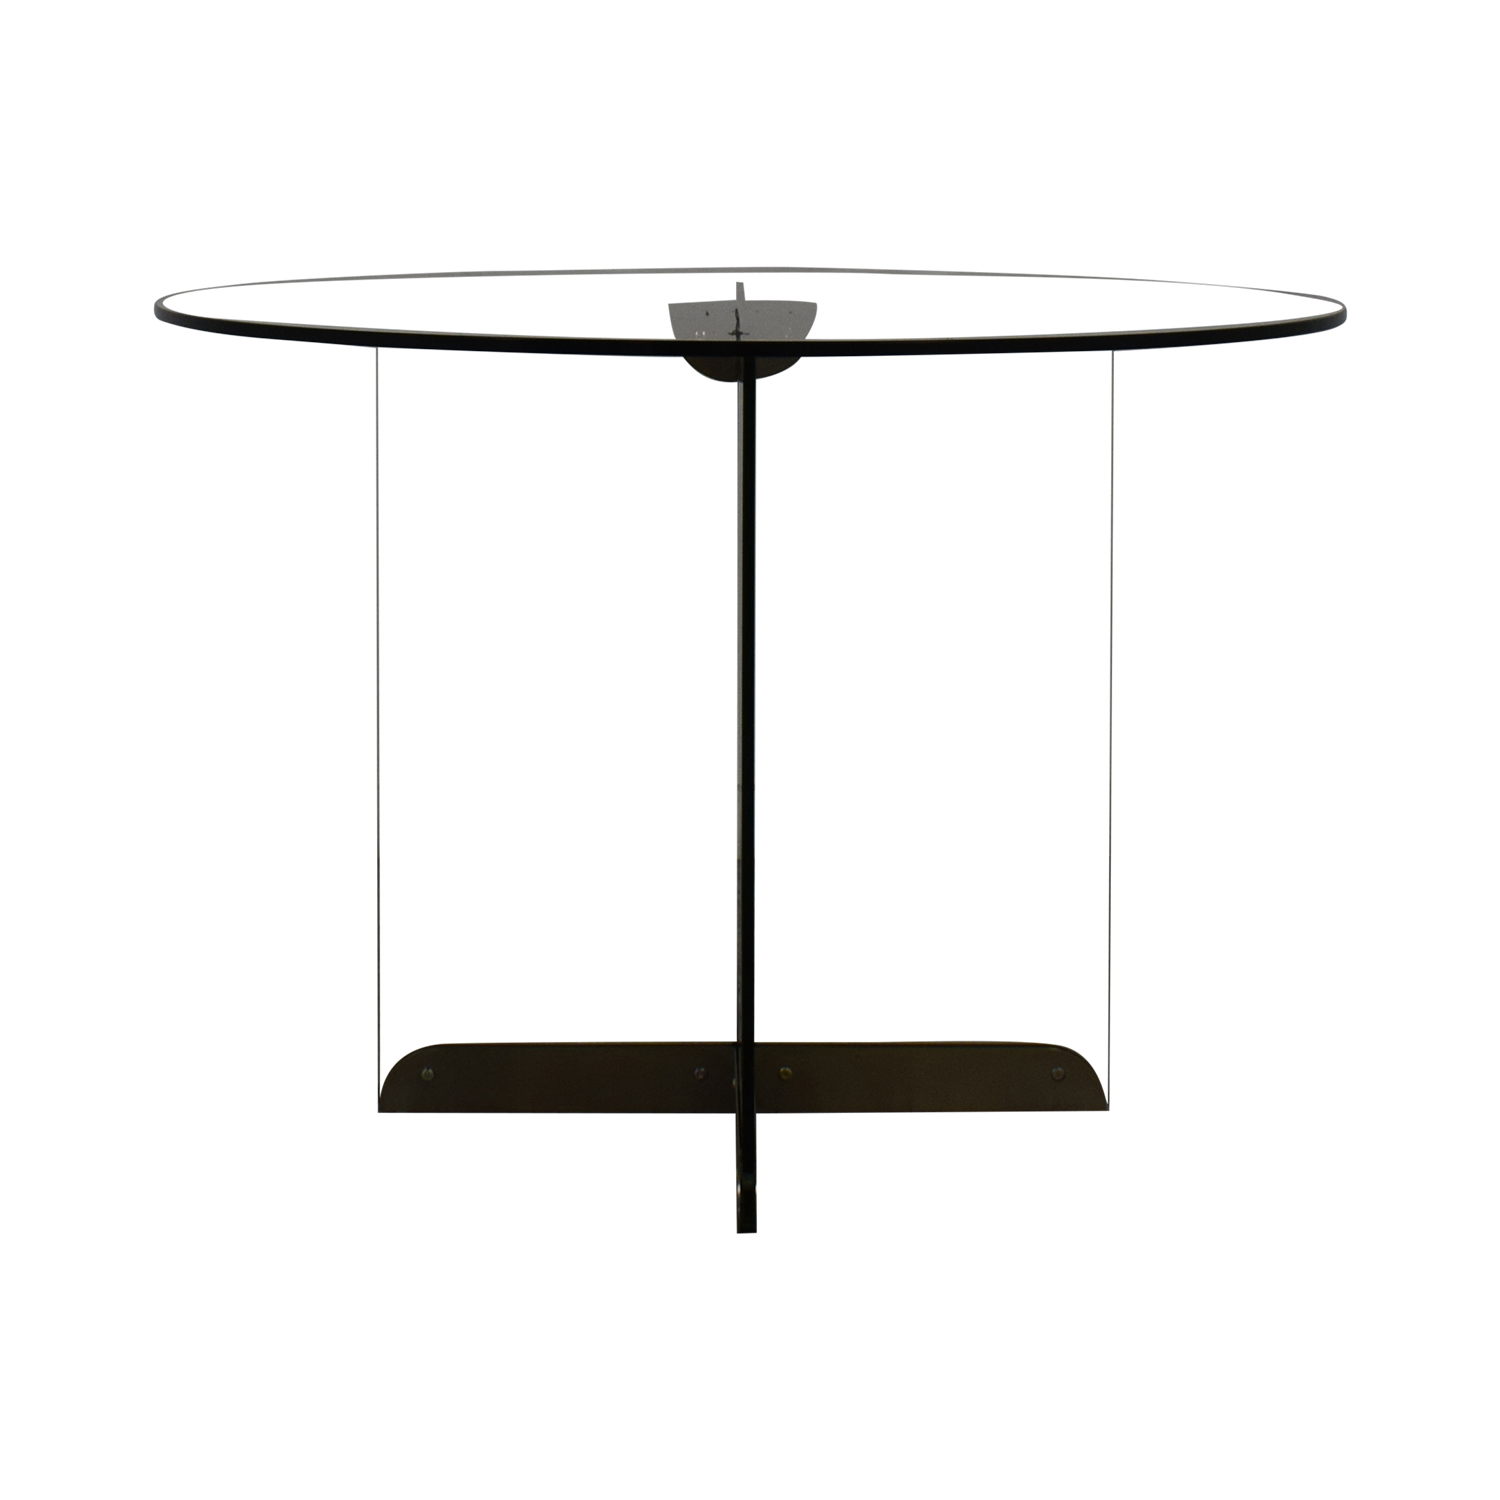 West Elm West Elm Callilope Table dimensions